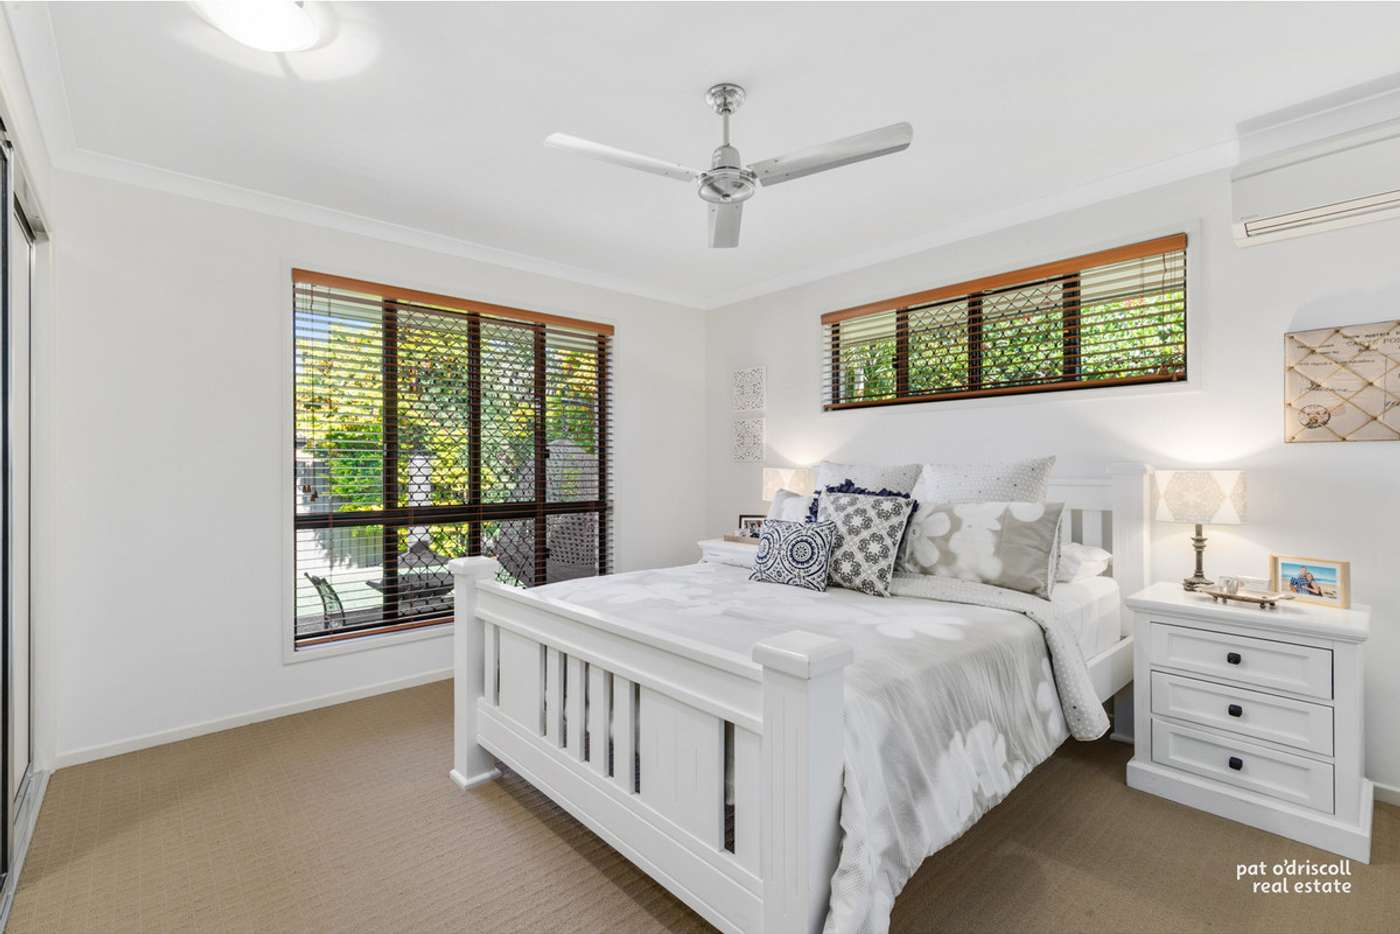 Sixth view of Homely house listing, 6 Cycad Court, Norman Gardens QLD 4701